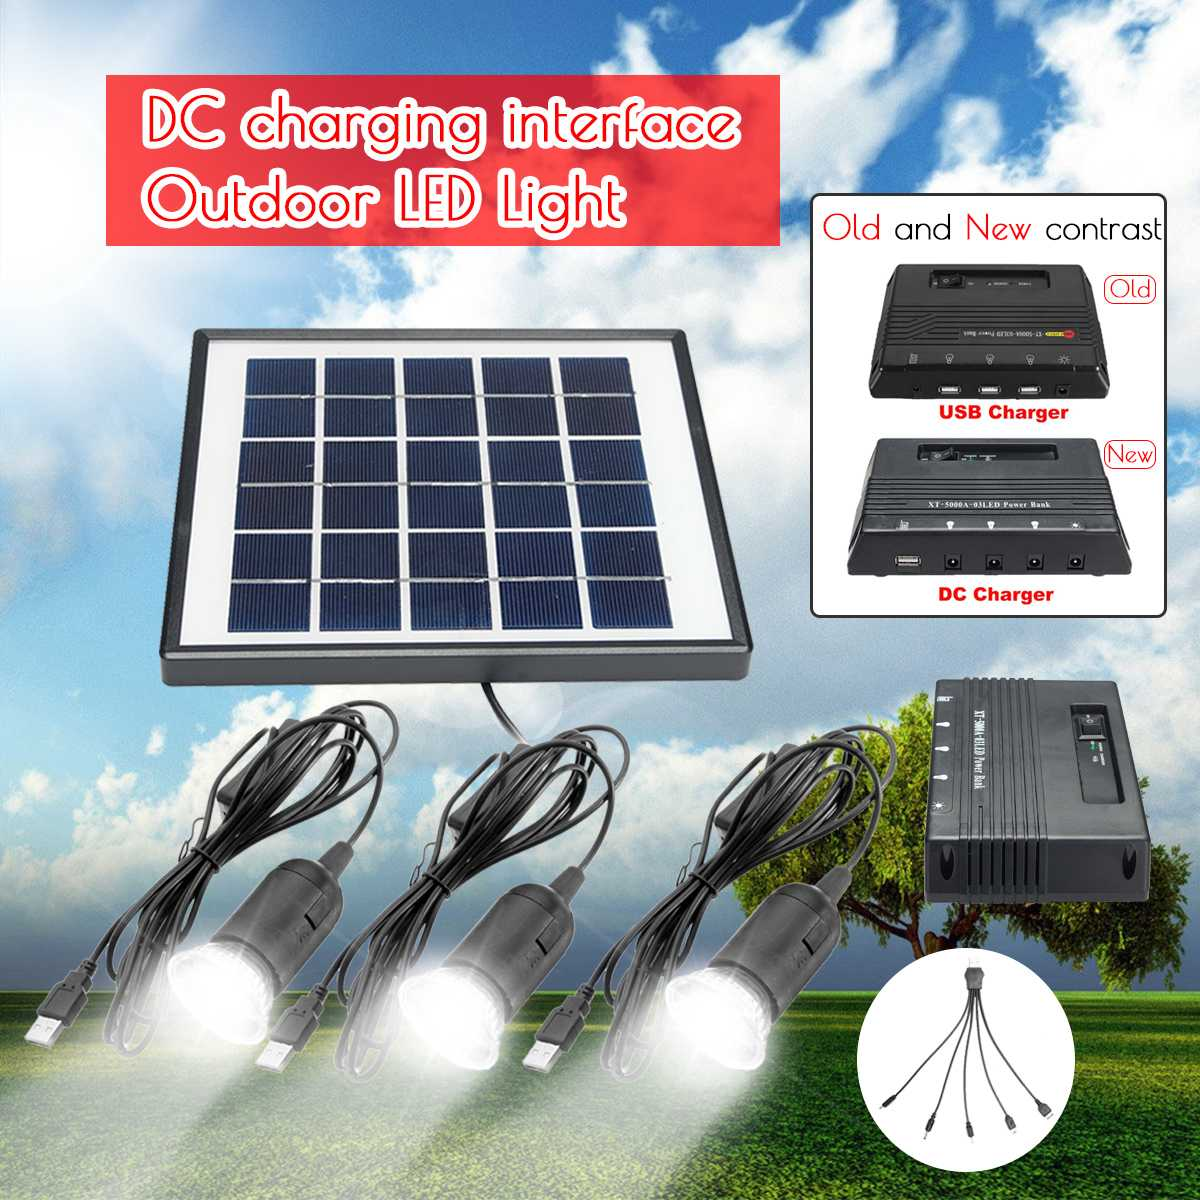 Smuxi 3pcs 1W Solar Lamp LED Garden Light Outdoor Lampe Solaire + 6V 4W Solar Panel + 5000mAh DC Power Bank For Outdoor CampingSmuxi 3pcs 1W Solar Lamp LED Garden Light Outdoor Lampe Solaire + 6V 4W Solar Panel + 5000mAh DC Power Bank For Outdoor Camping